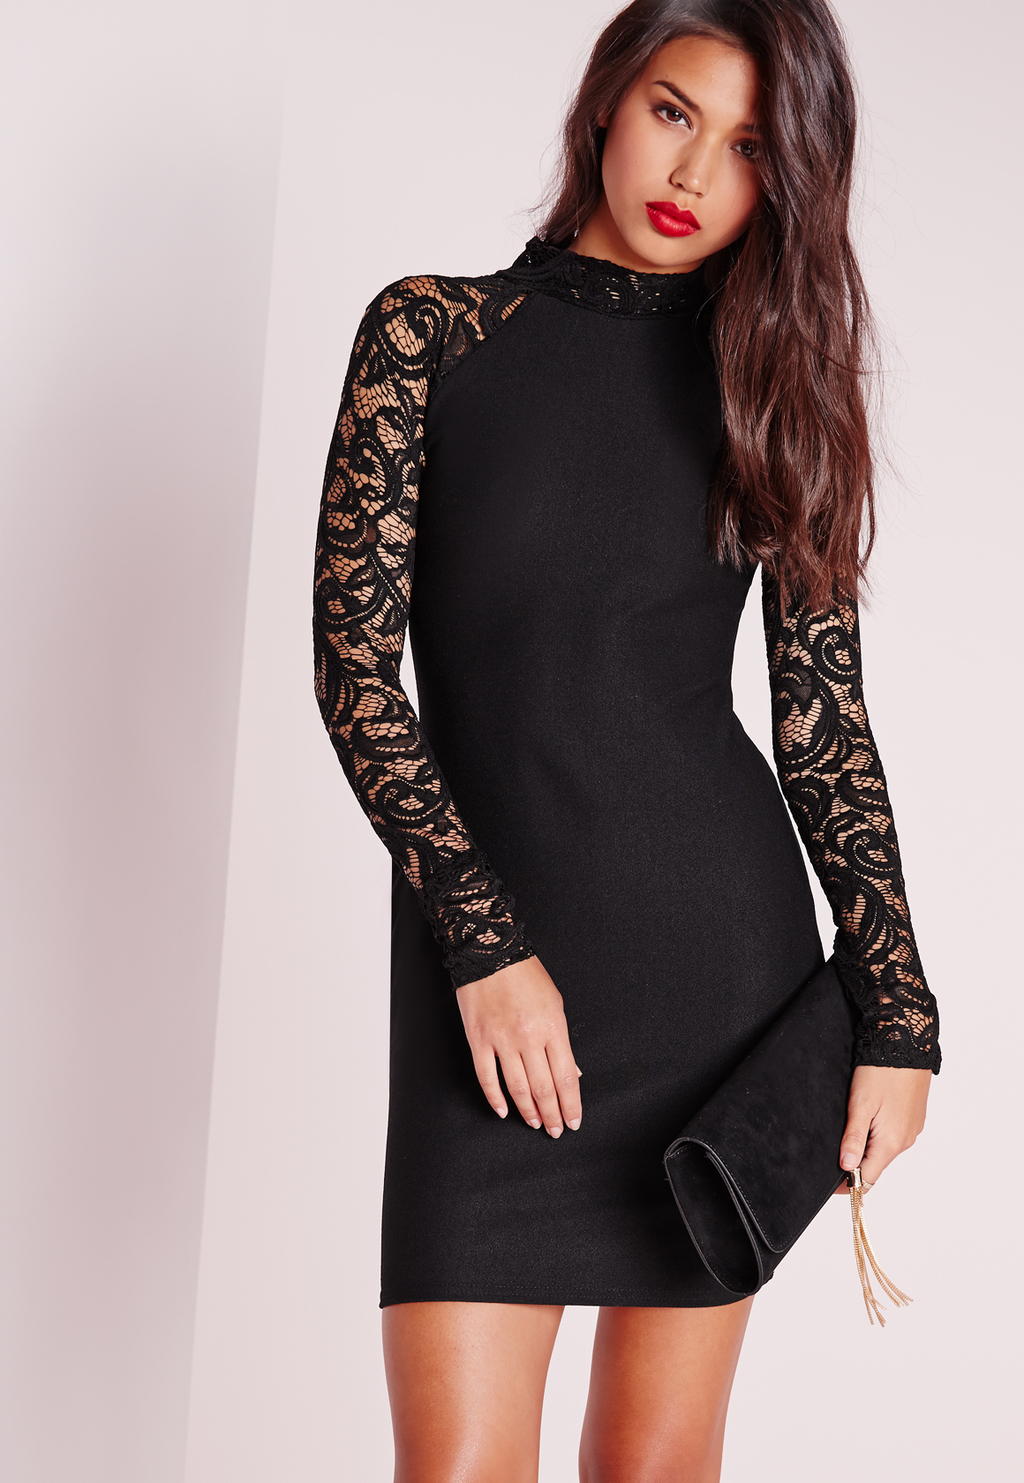 Lace Long Sleeve Bodycon Dress Black, Black - length: mini; fit: tight; neckline: high neck; style: bodycon; predominant colour: black; occasions: evening; fibres: polyester/polyamide - stretch; sleeve length: long sleeve; sleeve style: standard; texture group: lace; pattern type: fabric; pattern size: standard; pattern: patterned/print; embellishment: lace; season: s/s 2016; wardrobe: event